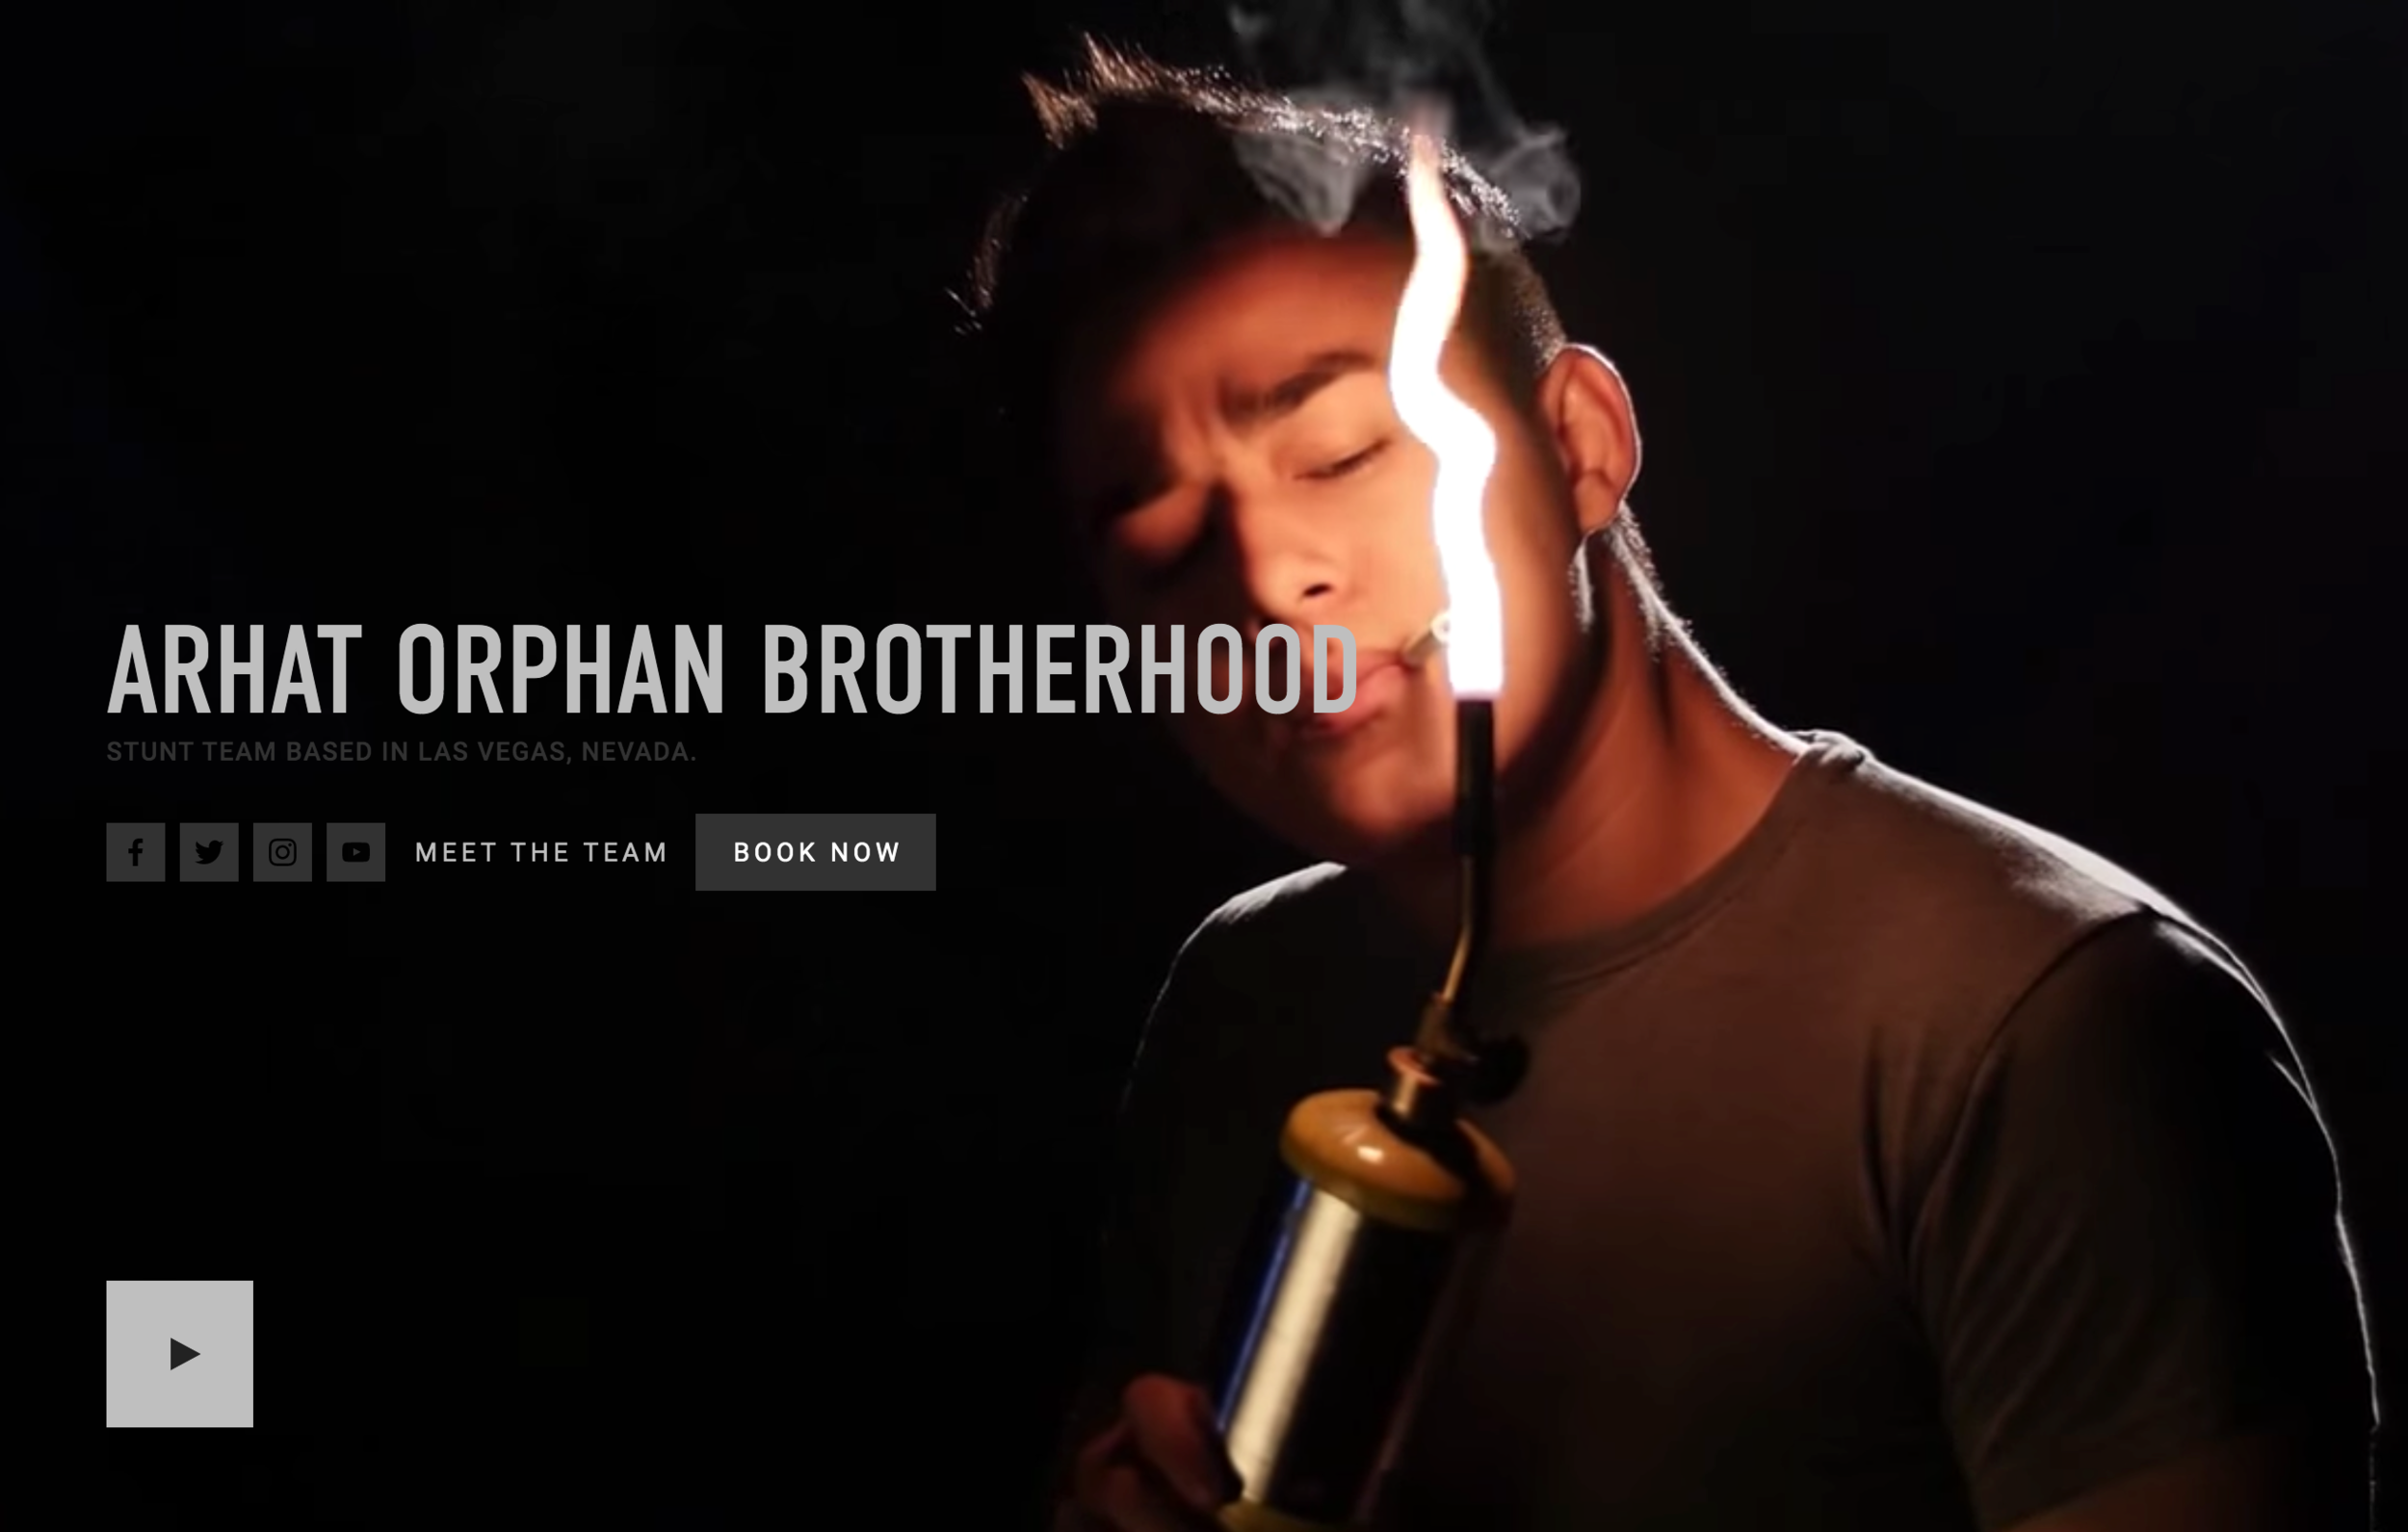 Arhat Orphan Brotherhood - a stunt team based in Las Vegas, NV, specializing in fight choreography, consultation, and the education of actors for fight scenes in any venue.